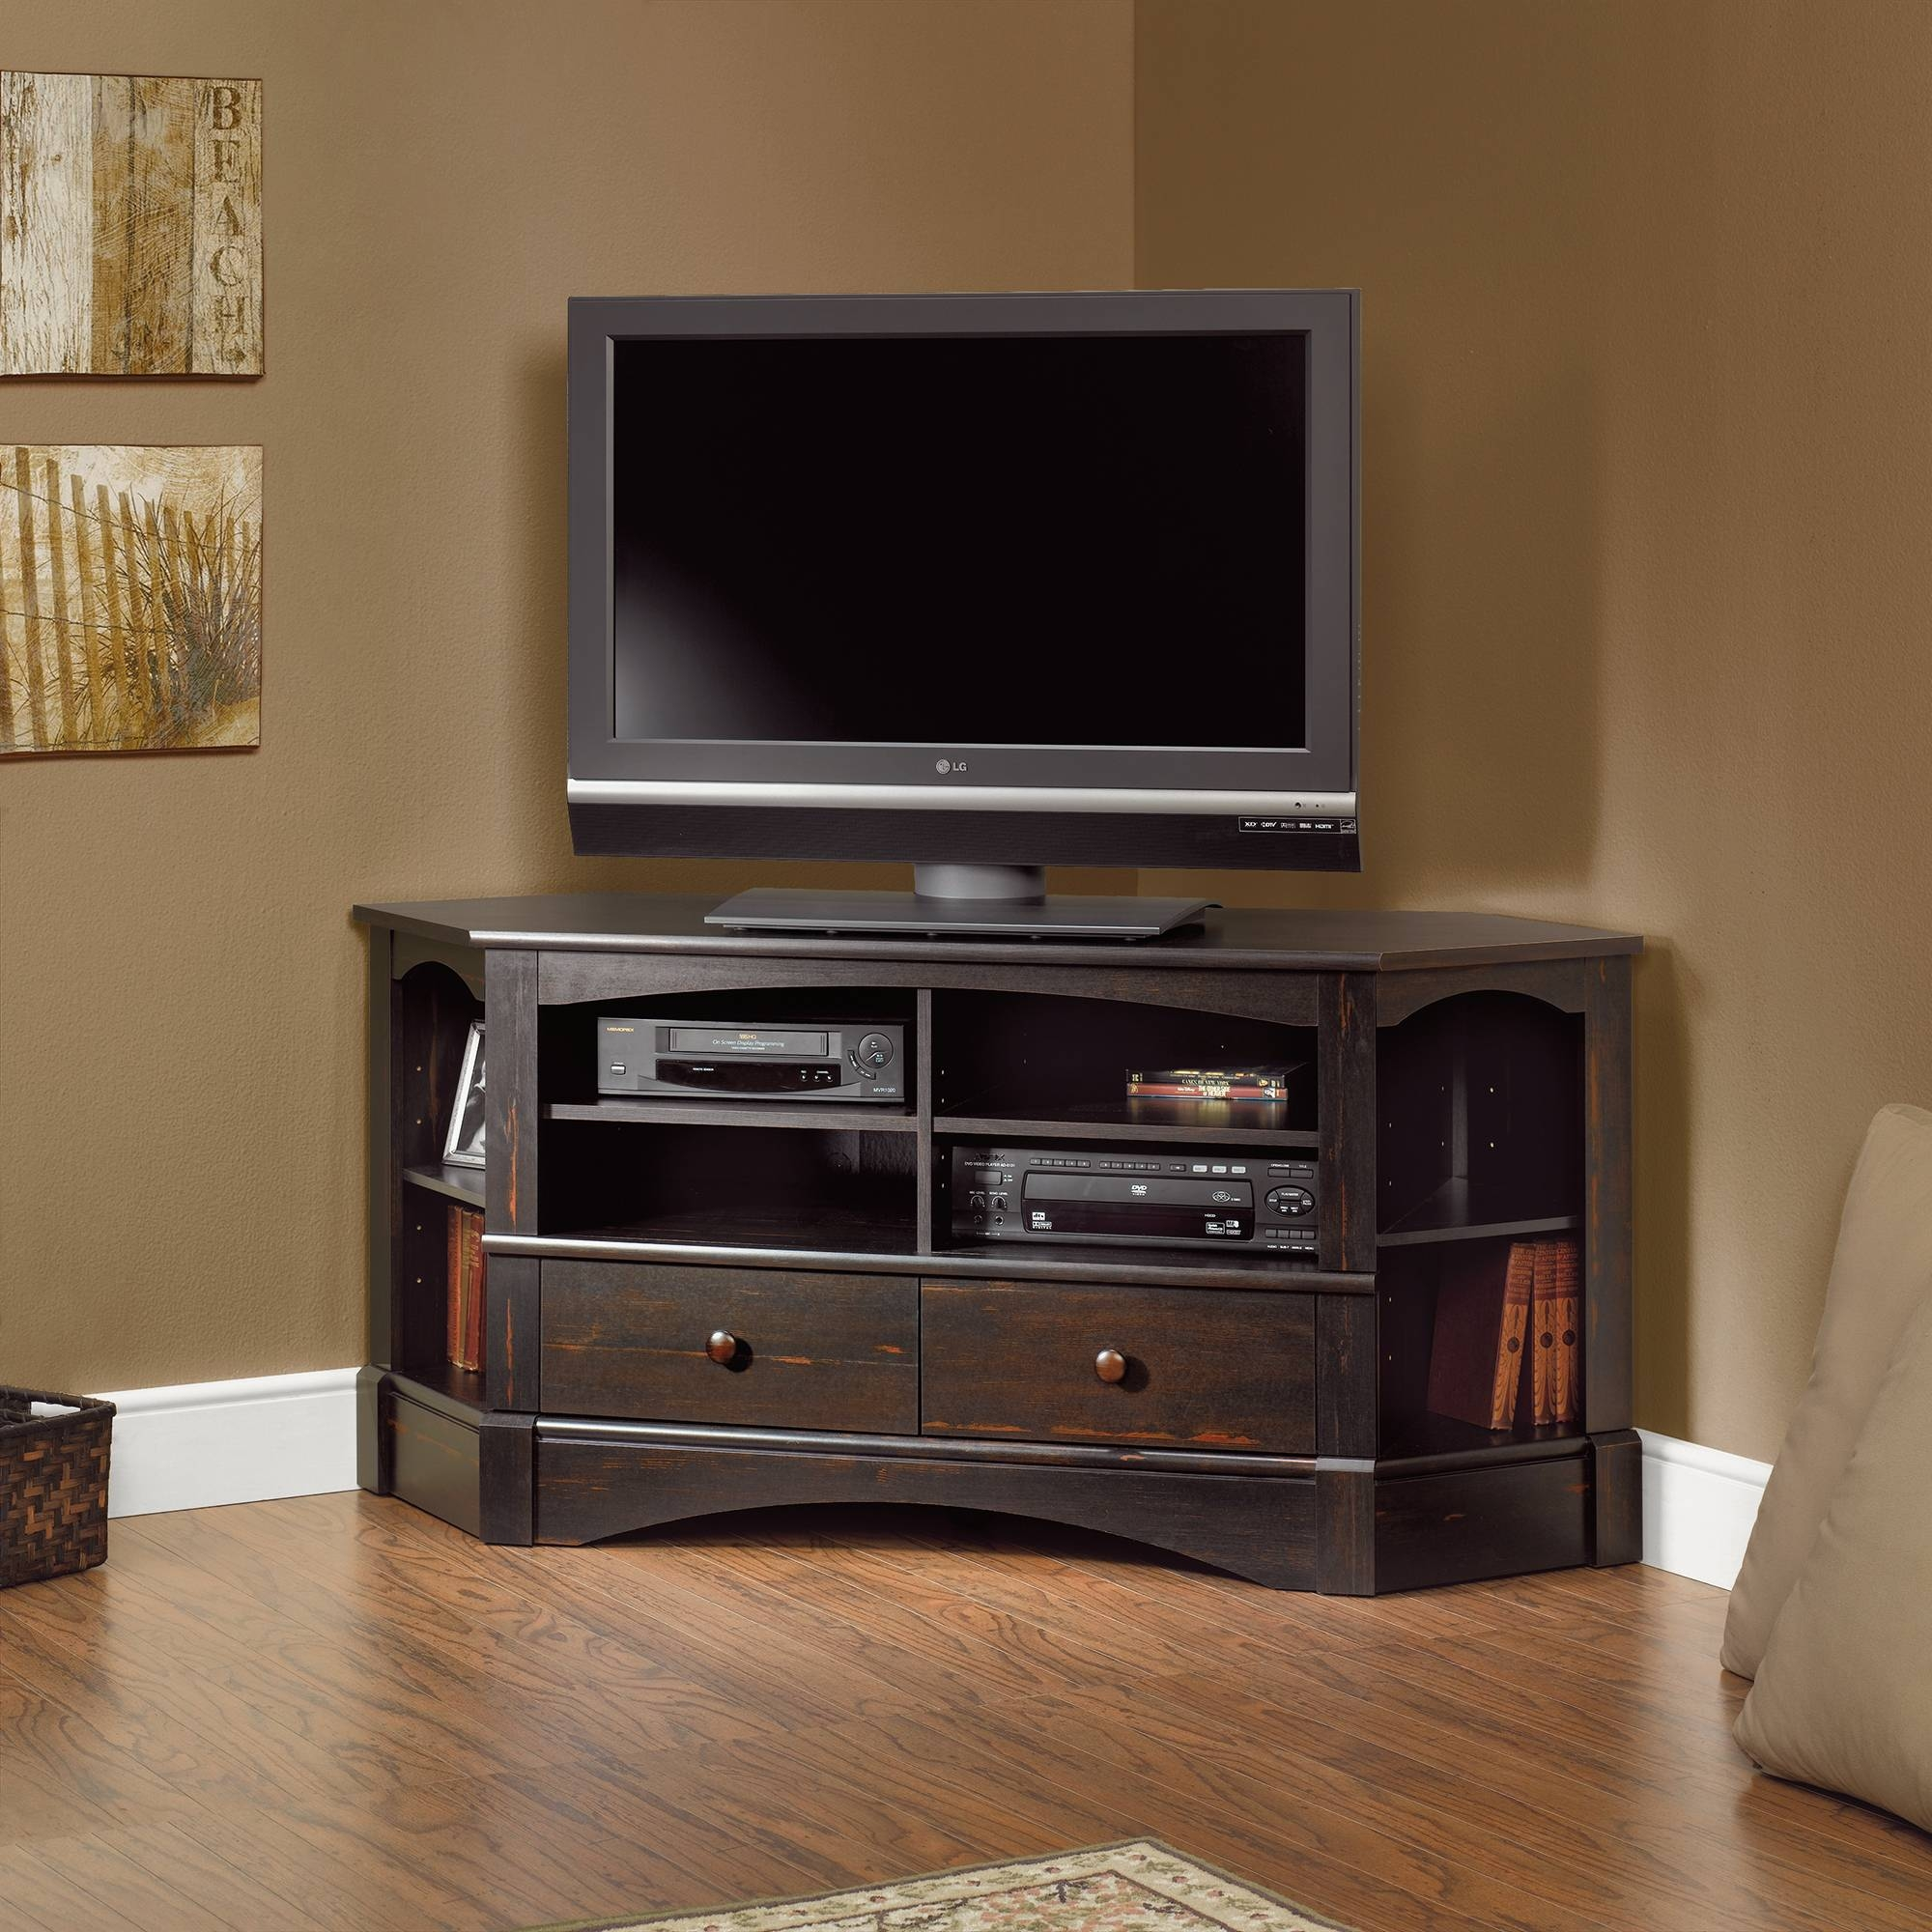 Furniture: Charming Brown Wooden Sauder Tv Stand With Silver Intended For Silver Corner Tv Stands (View 2 of 15)